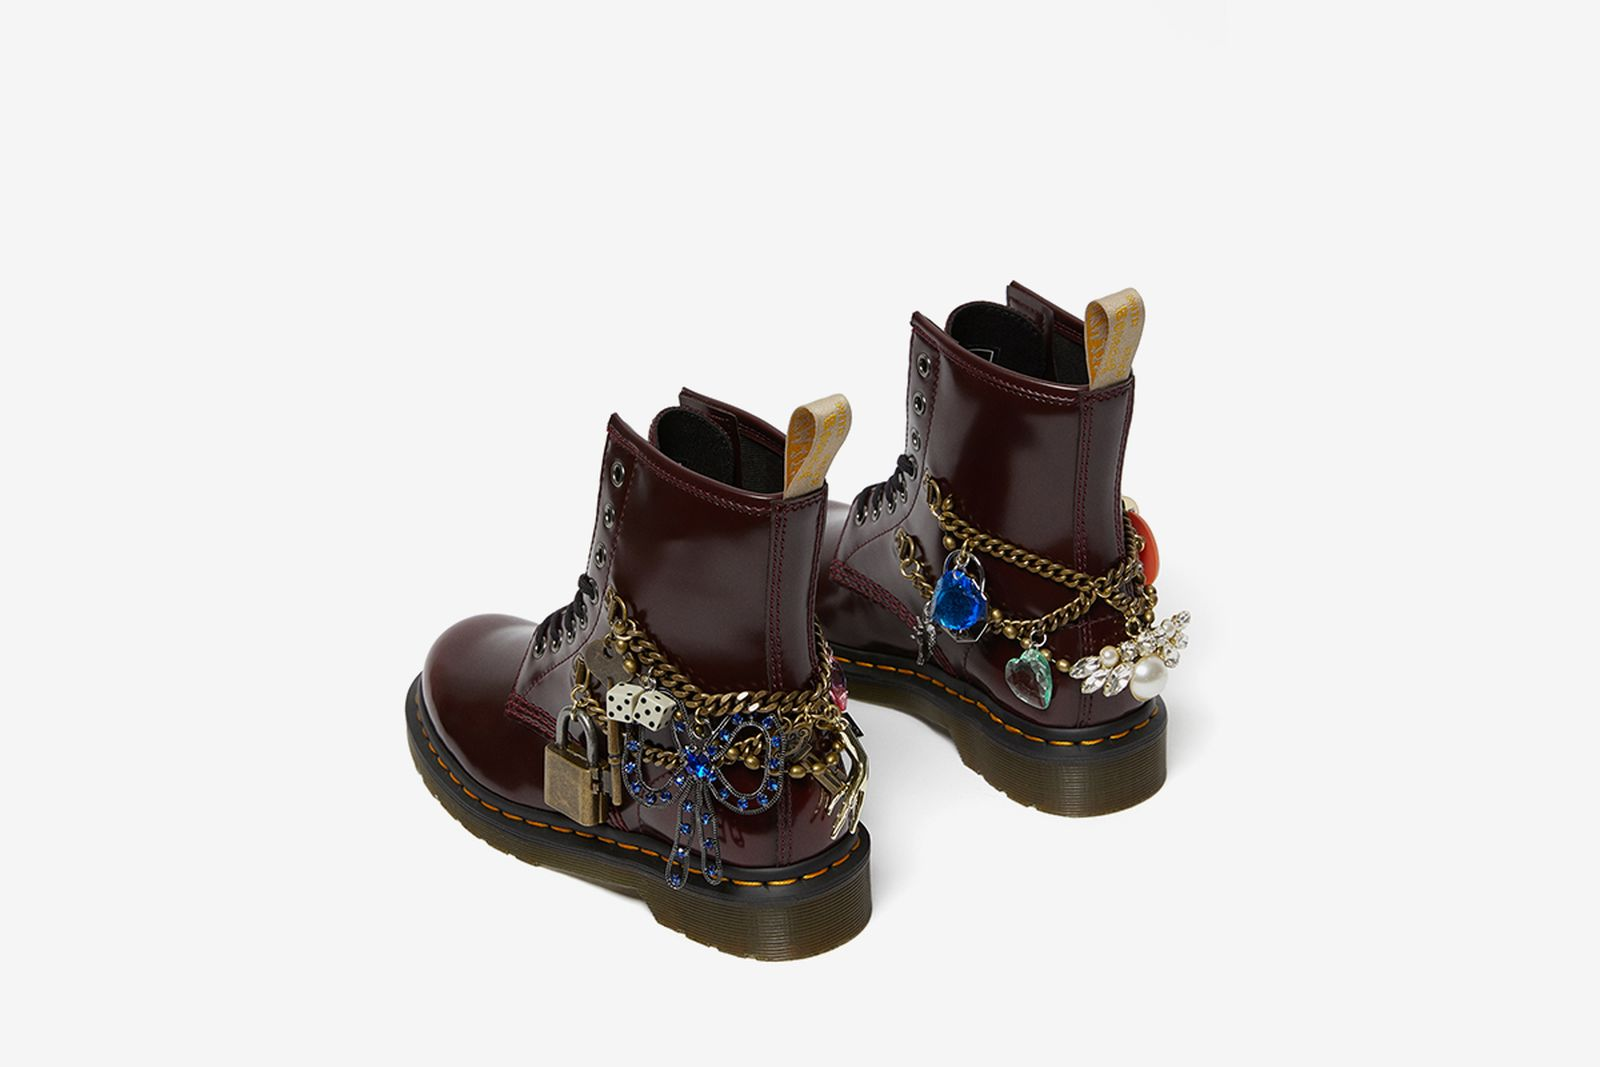 marc-jacobs-dr-martens-1460-remastered-release-date-price-11